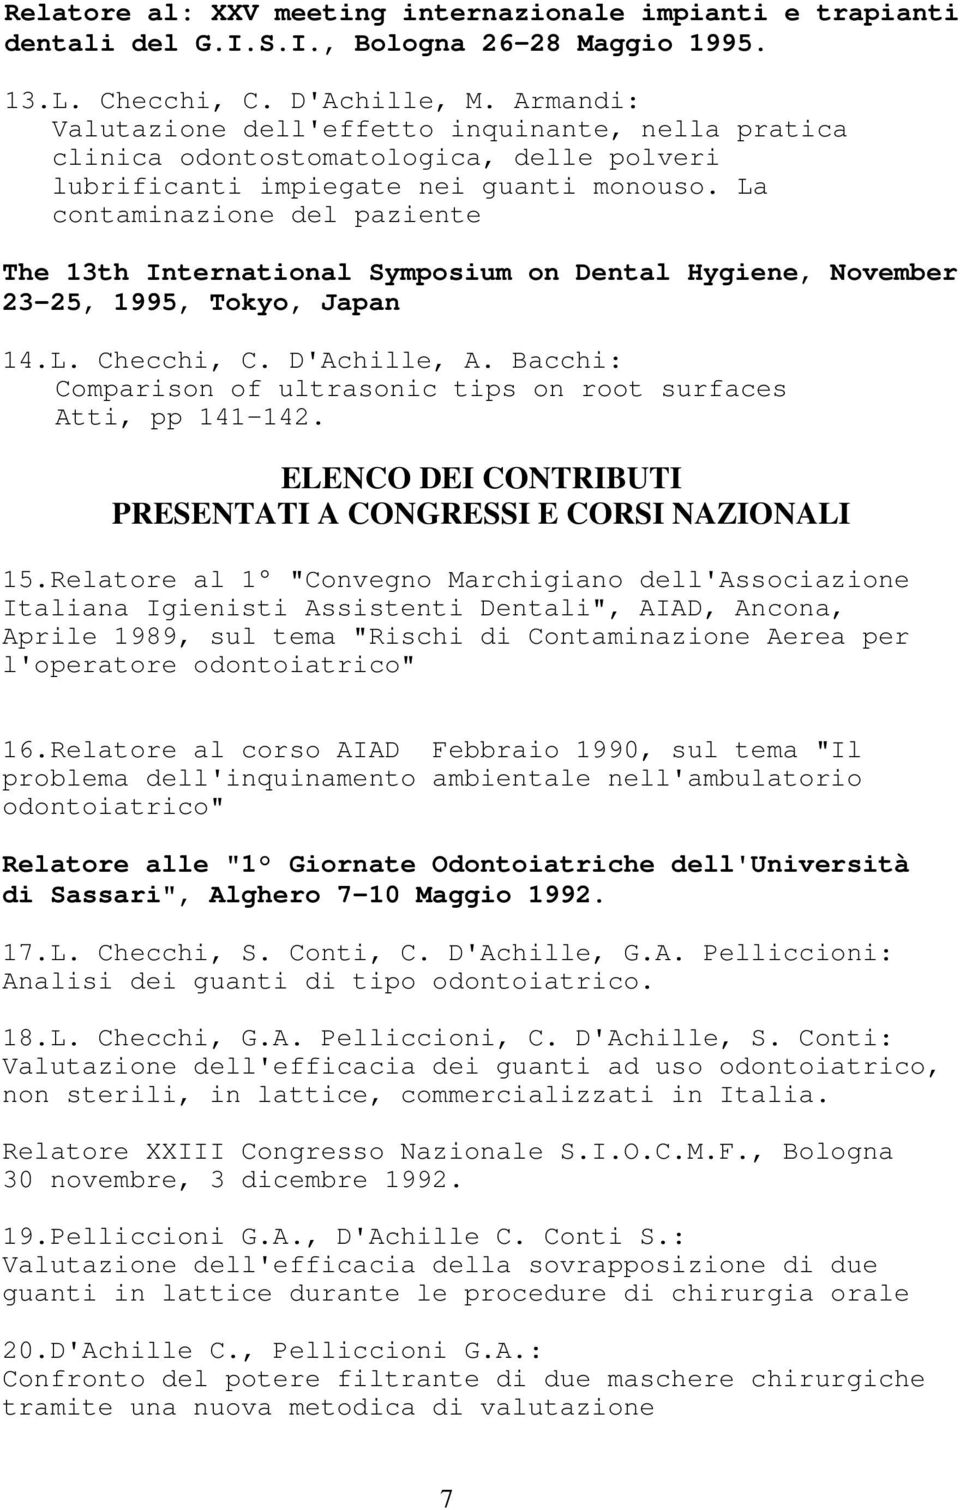 La contaminazione del paziente The 13th International Symposium on Dental Hygiene, November 23-25, 1995, Tokyo, Japan 14.L. Checchi, C. D'Achille, A.